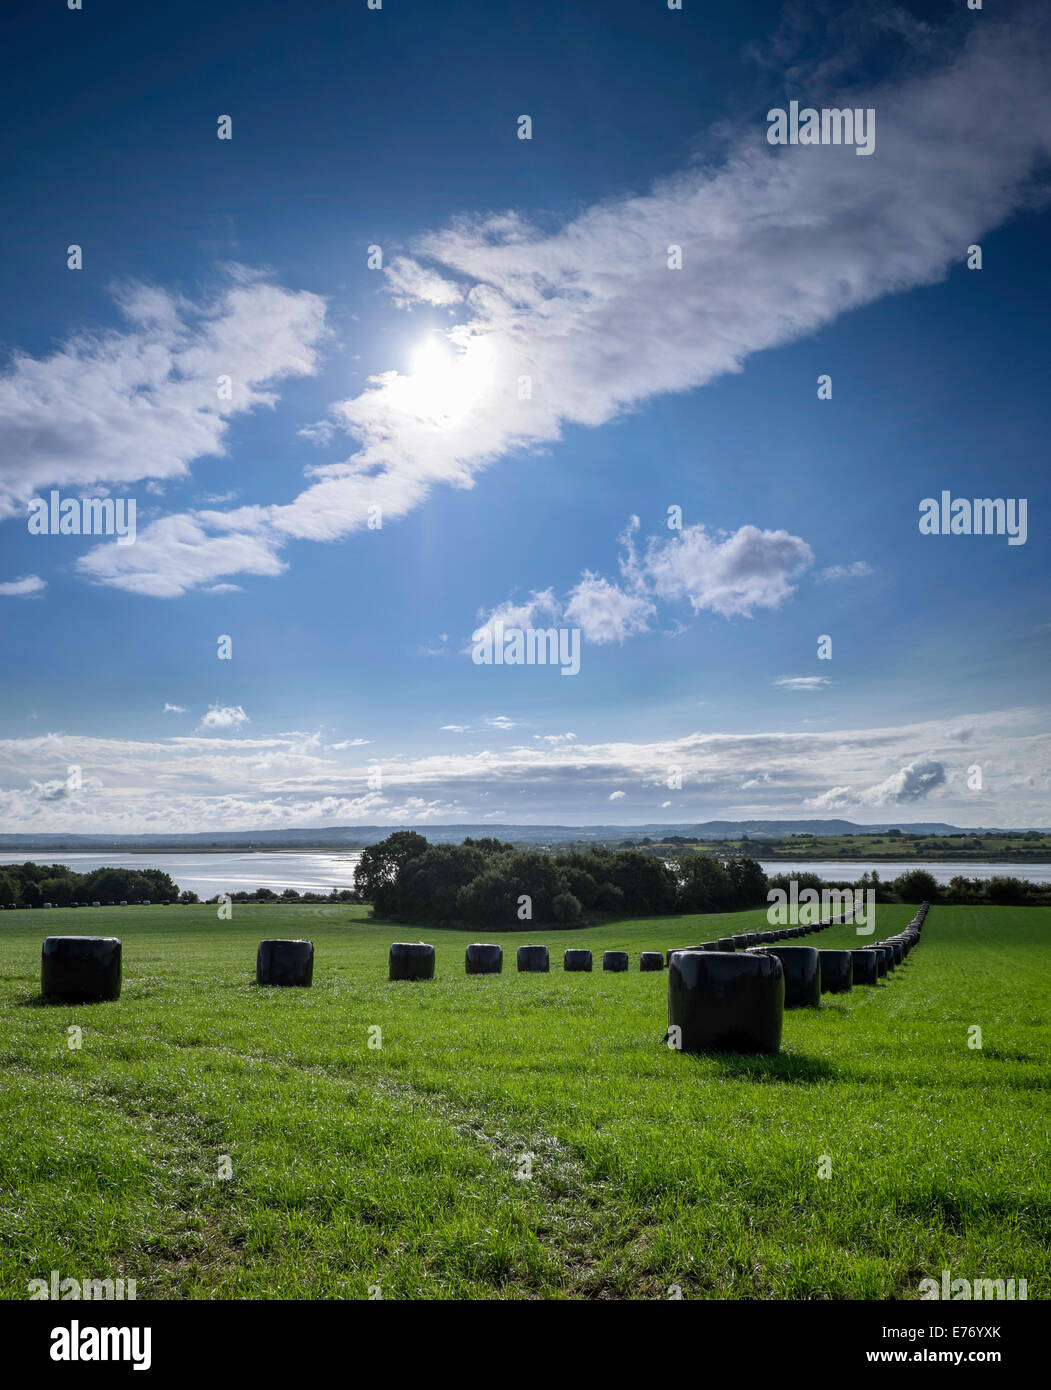 Field with wrapped bales in field on bank of River Severn, Gloucestershire England UK.Bales wrapped in black plastic - Stock Image